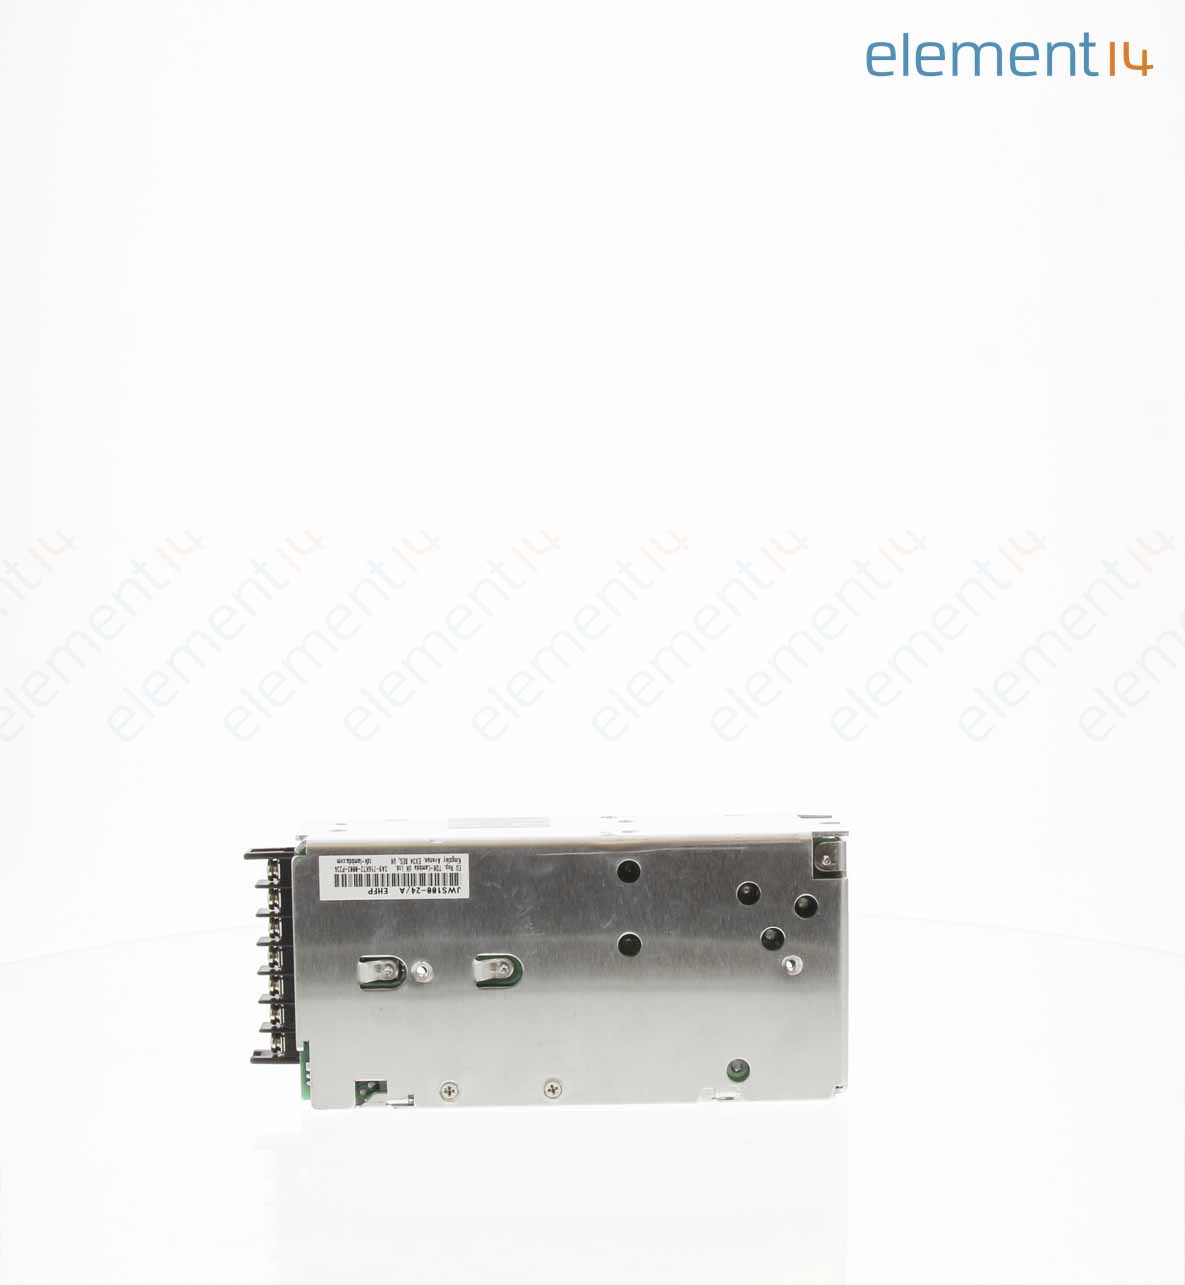 Jws10024 A Tdk Lambda Ac Dc Enclosed Power Supply Psu Ite 1 Supplies Switching 360 Add To Compare